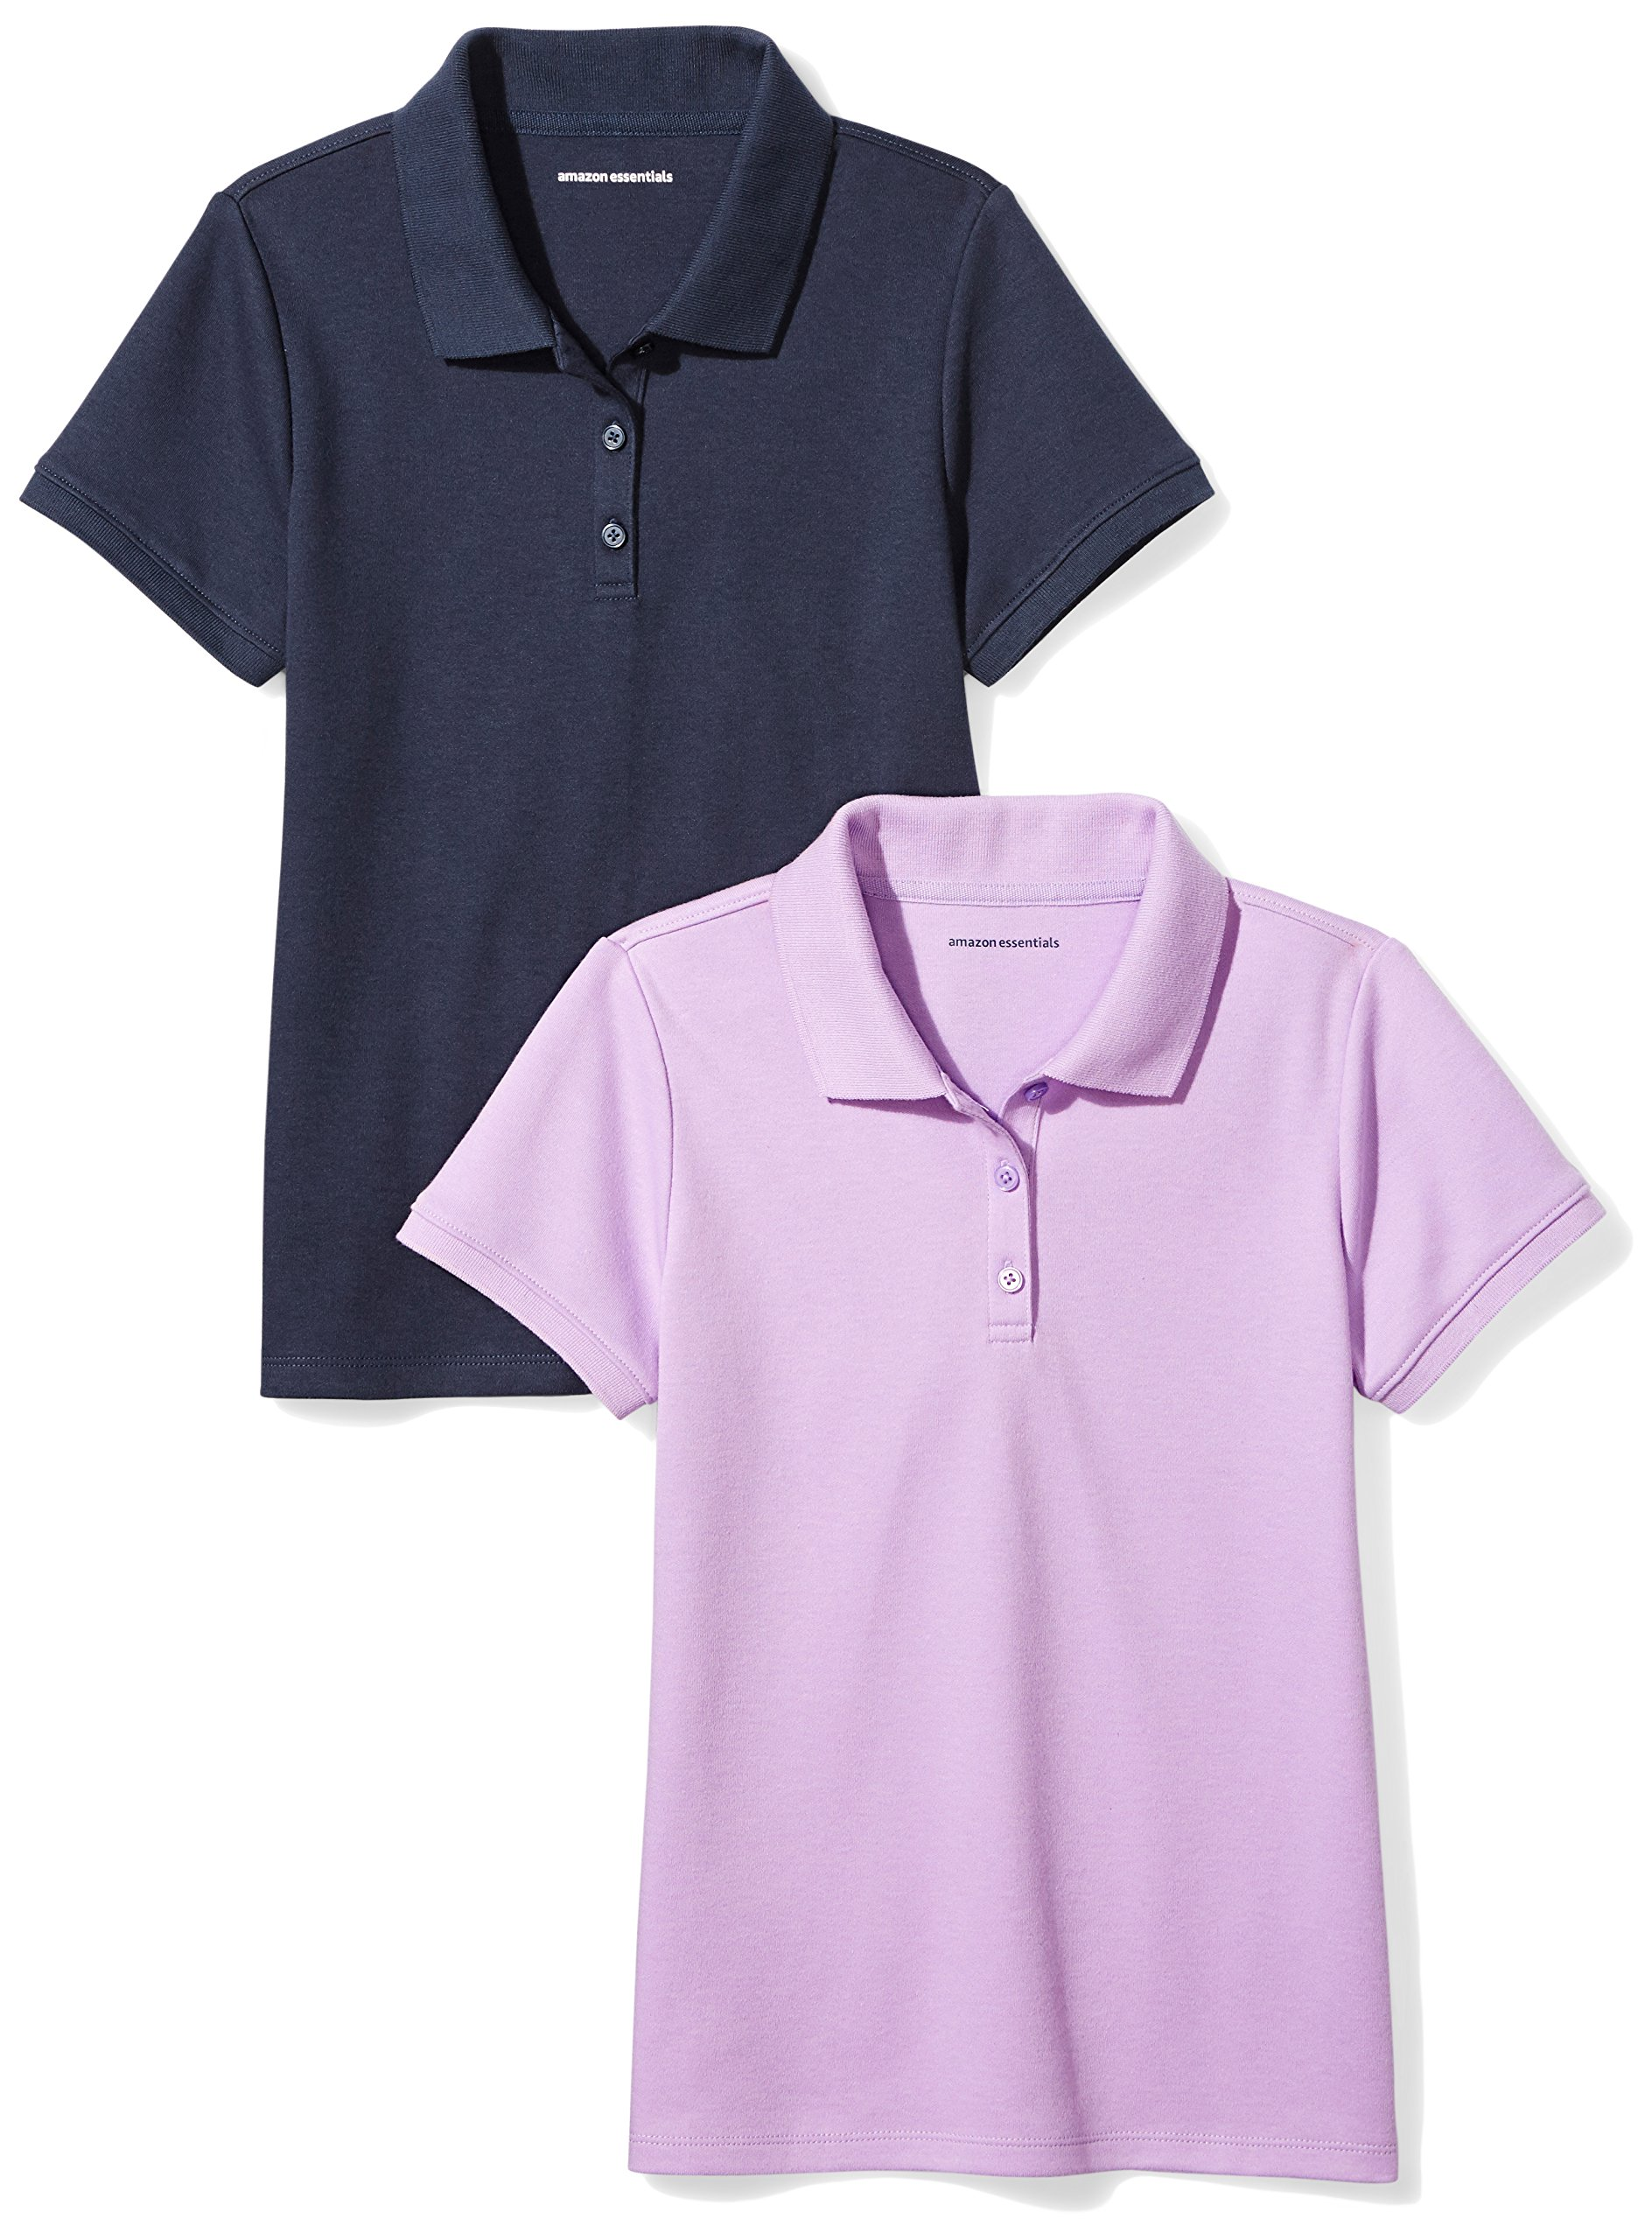 Amazon Essentials Girls' Uniform 2-Pack Interlock Polo, Lilac/Navy, S (6-7)